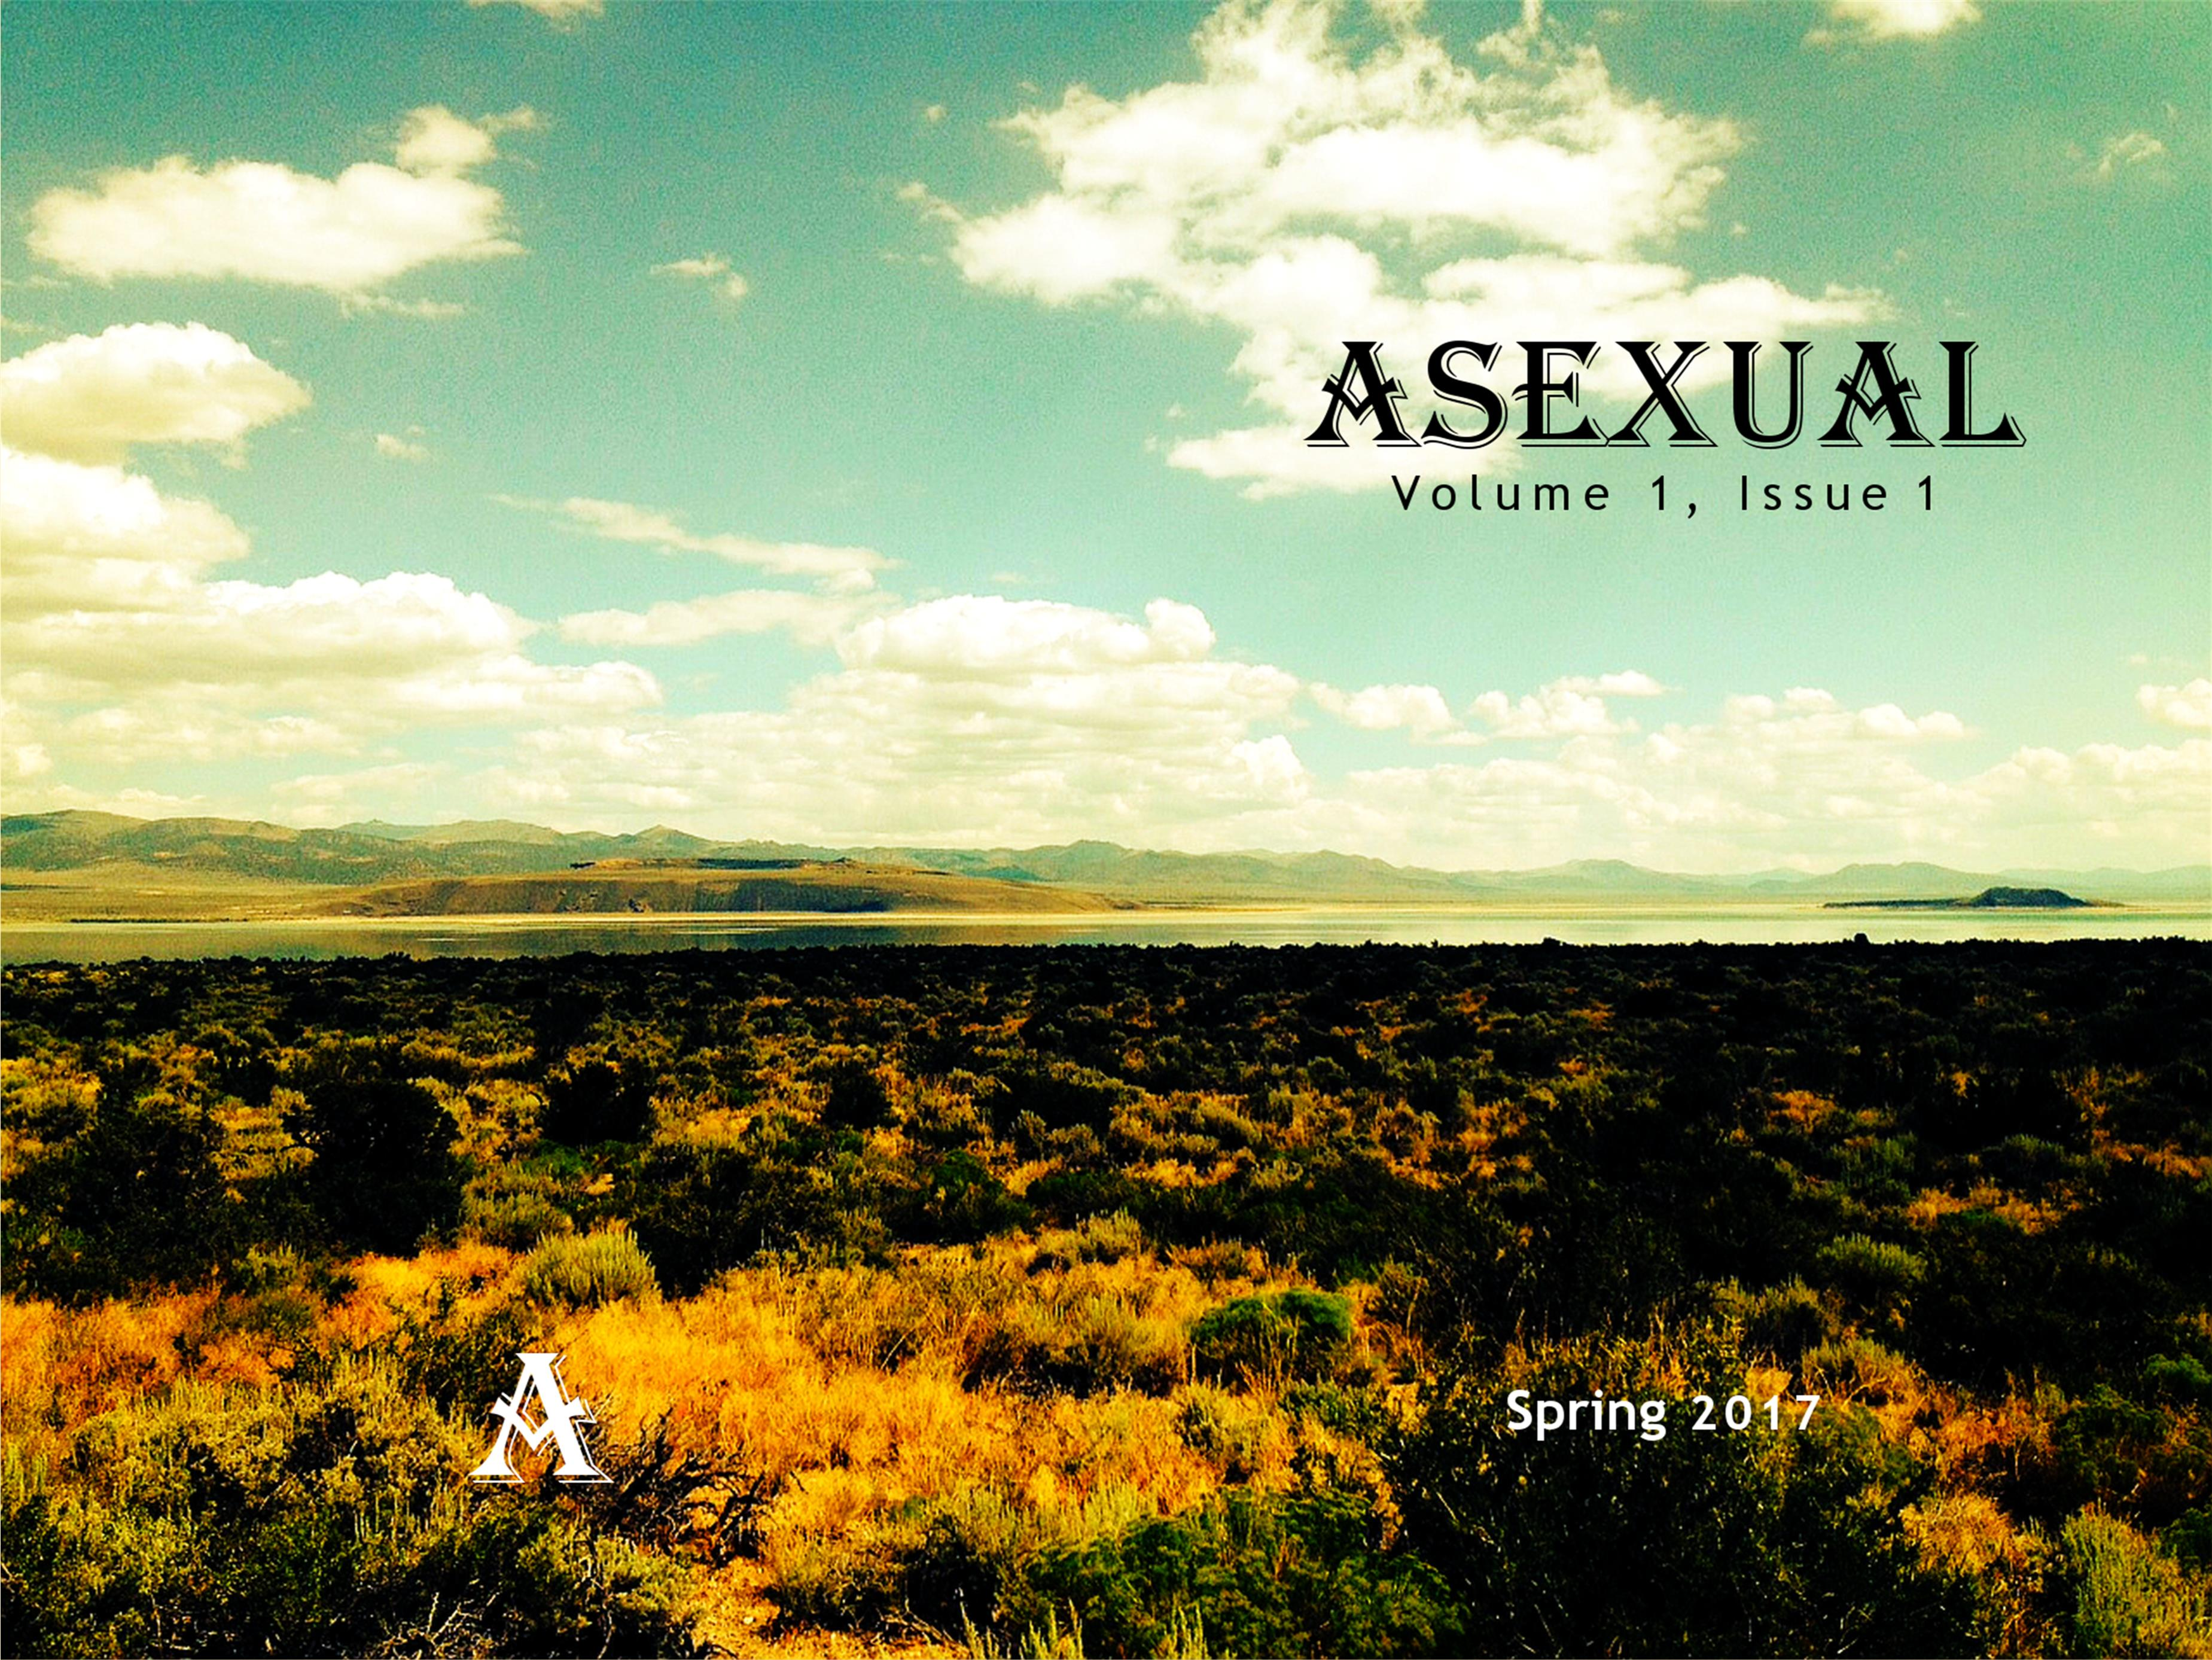 The Asexual: Vol. 1, Issue 1 cover image